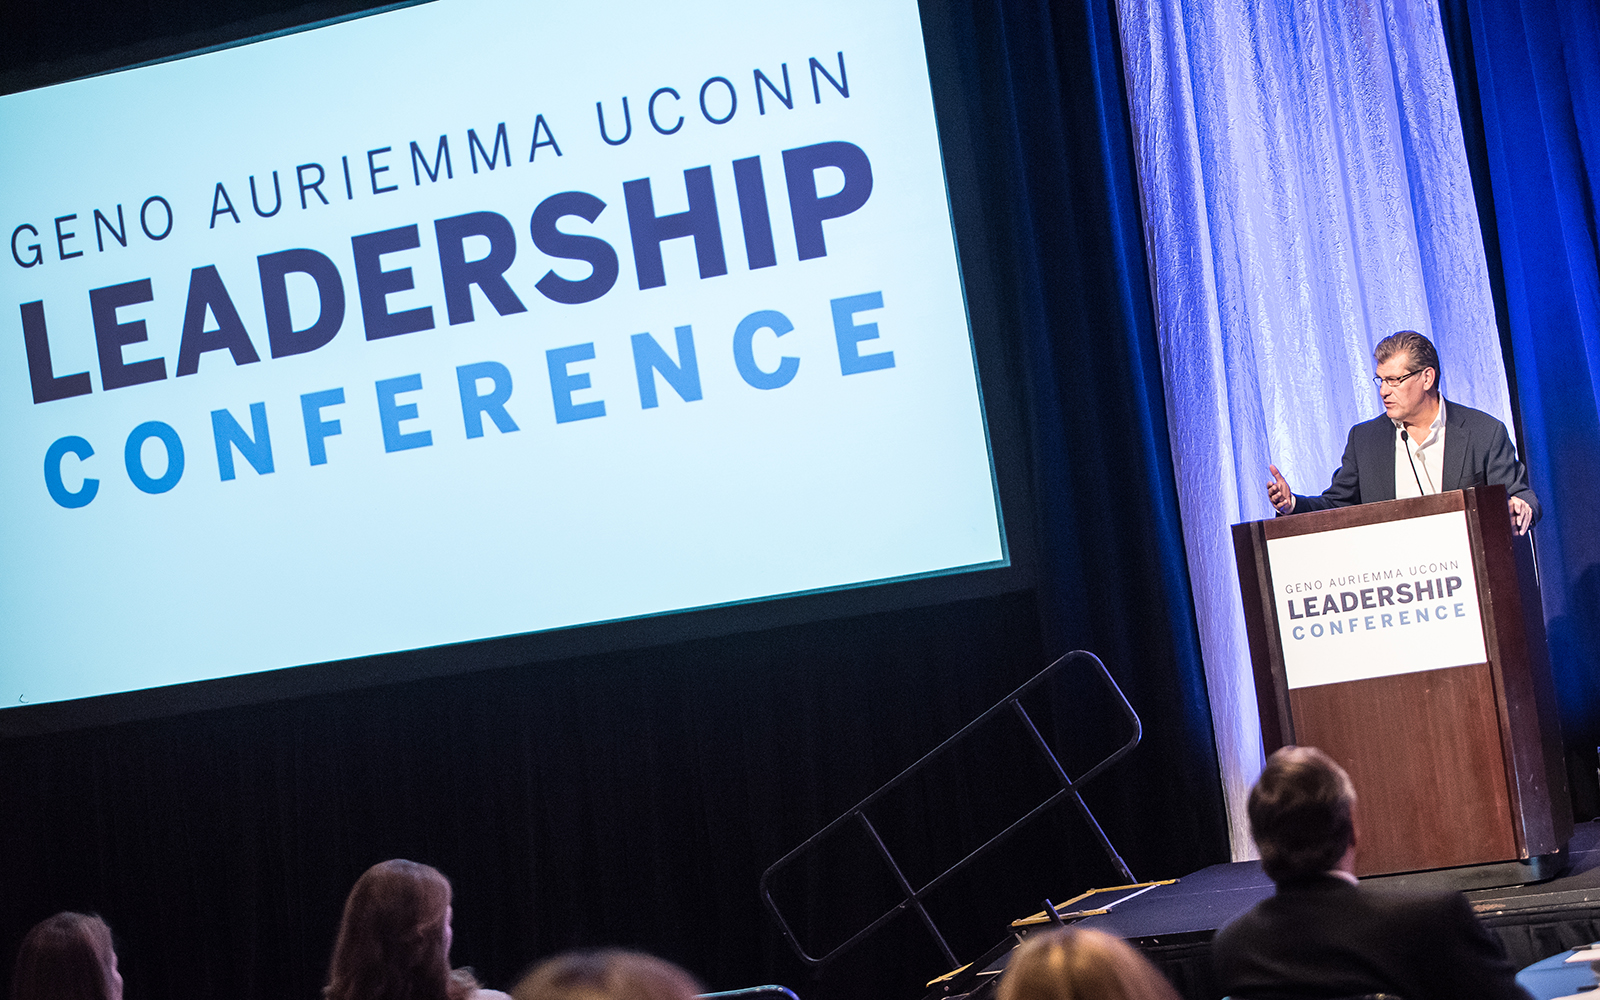 Geno Auriemma UConn Leadership Conference Offers Plethora of Advice for Rising Executives